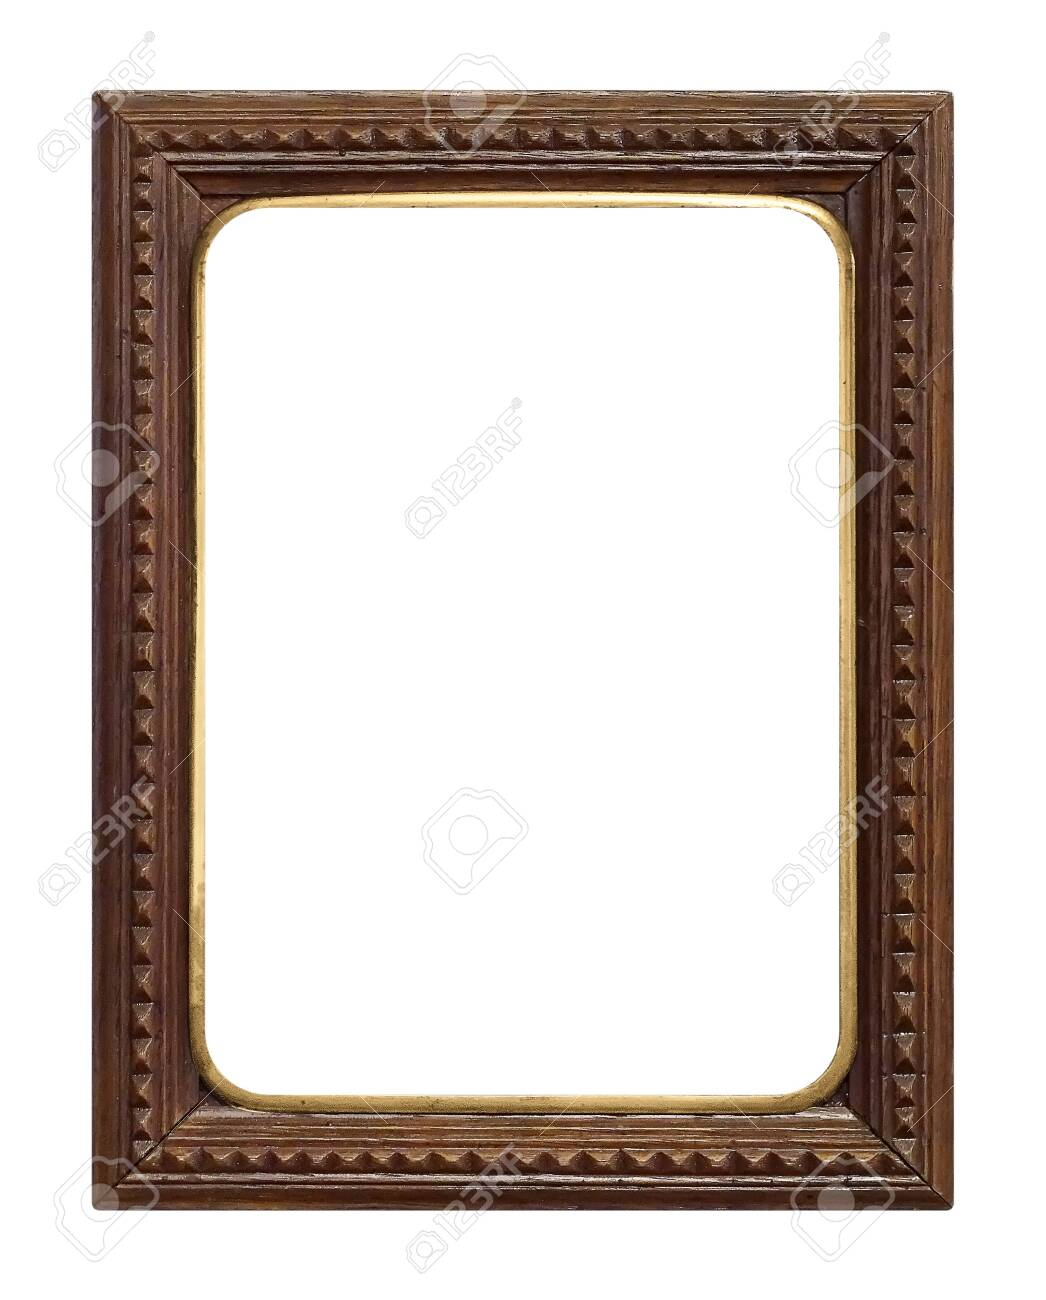 Wooden frame for paintings, mirrors or photo isolated on white background - 128223966